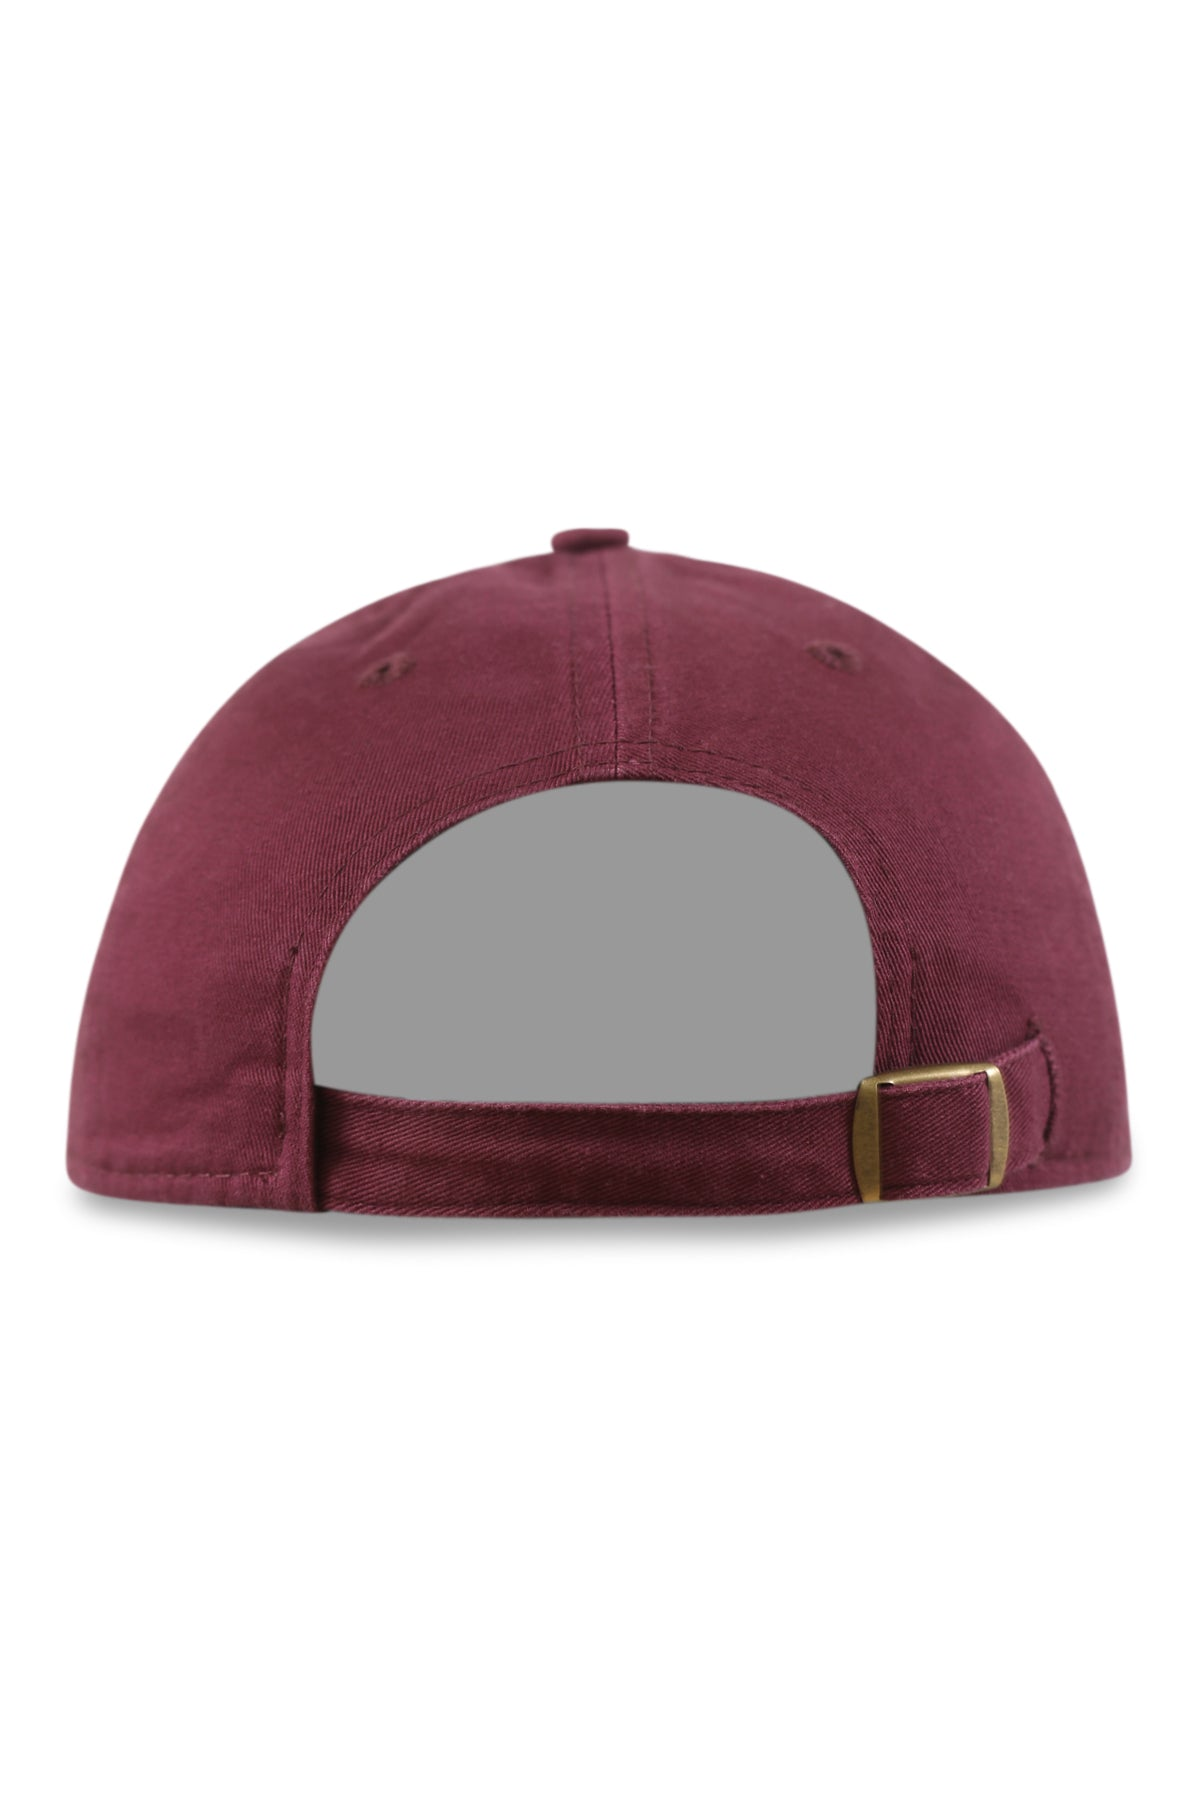 New Era Casual Classic NYC Rose Maroon Strapback Back